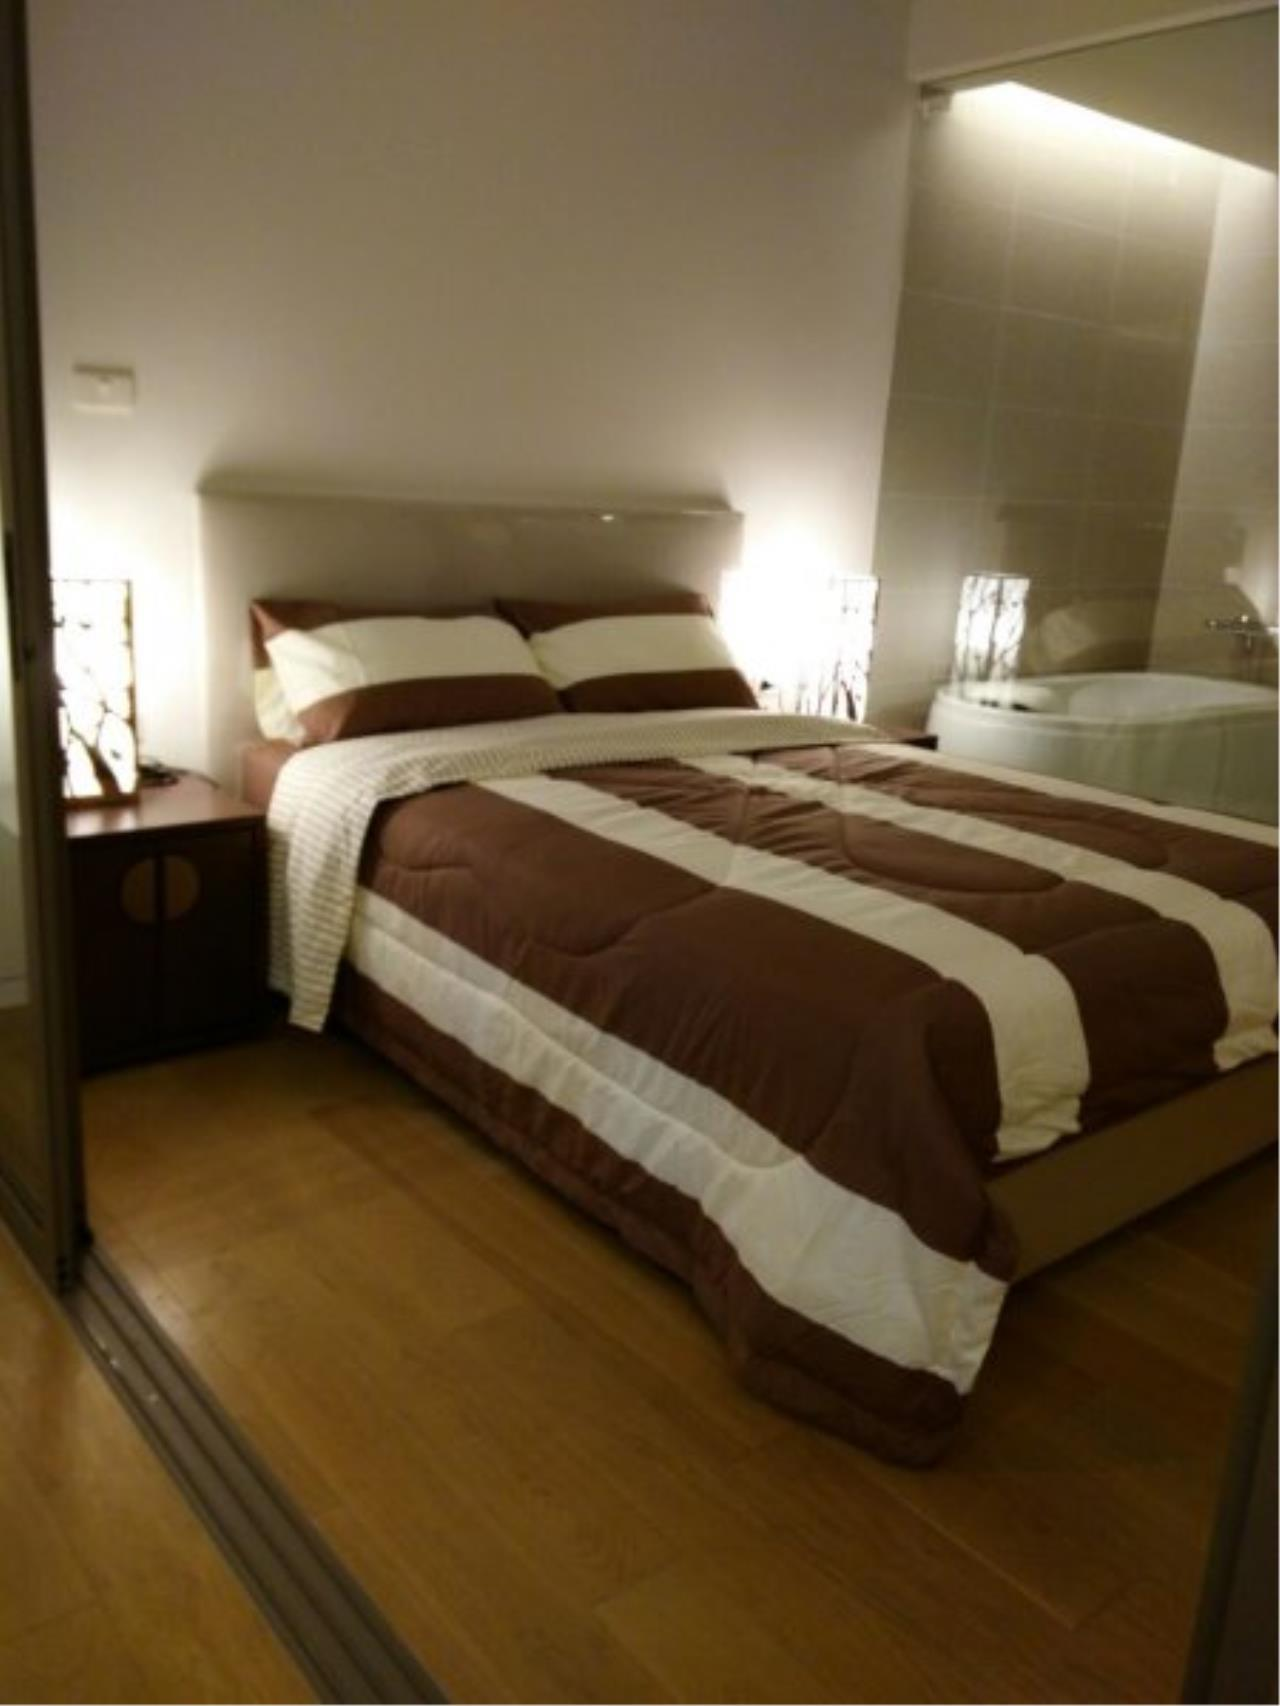 Piri Property Agency's Cozy 1 Bedroom in the Siamese 39 Building for rent 3